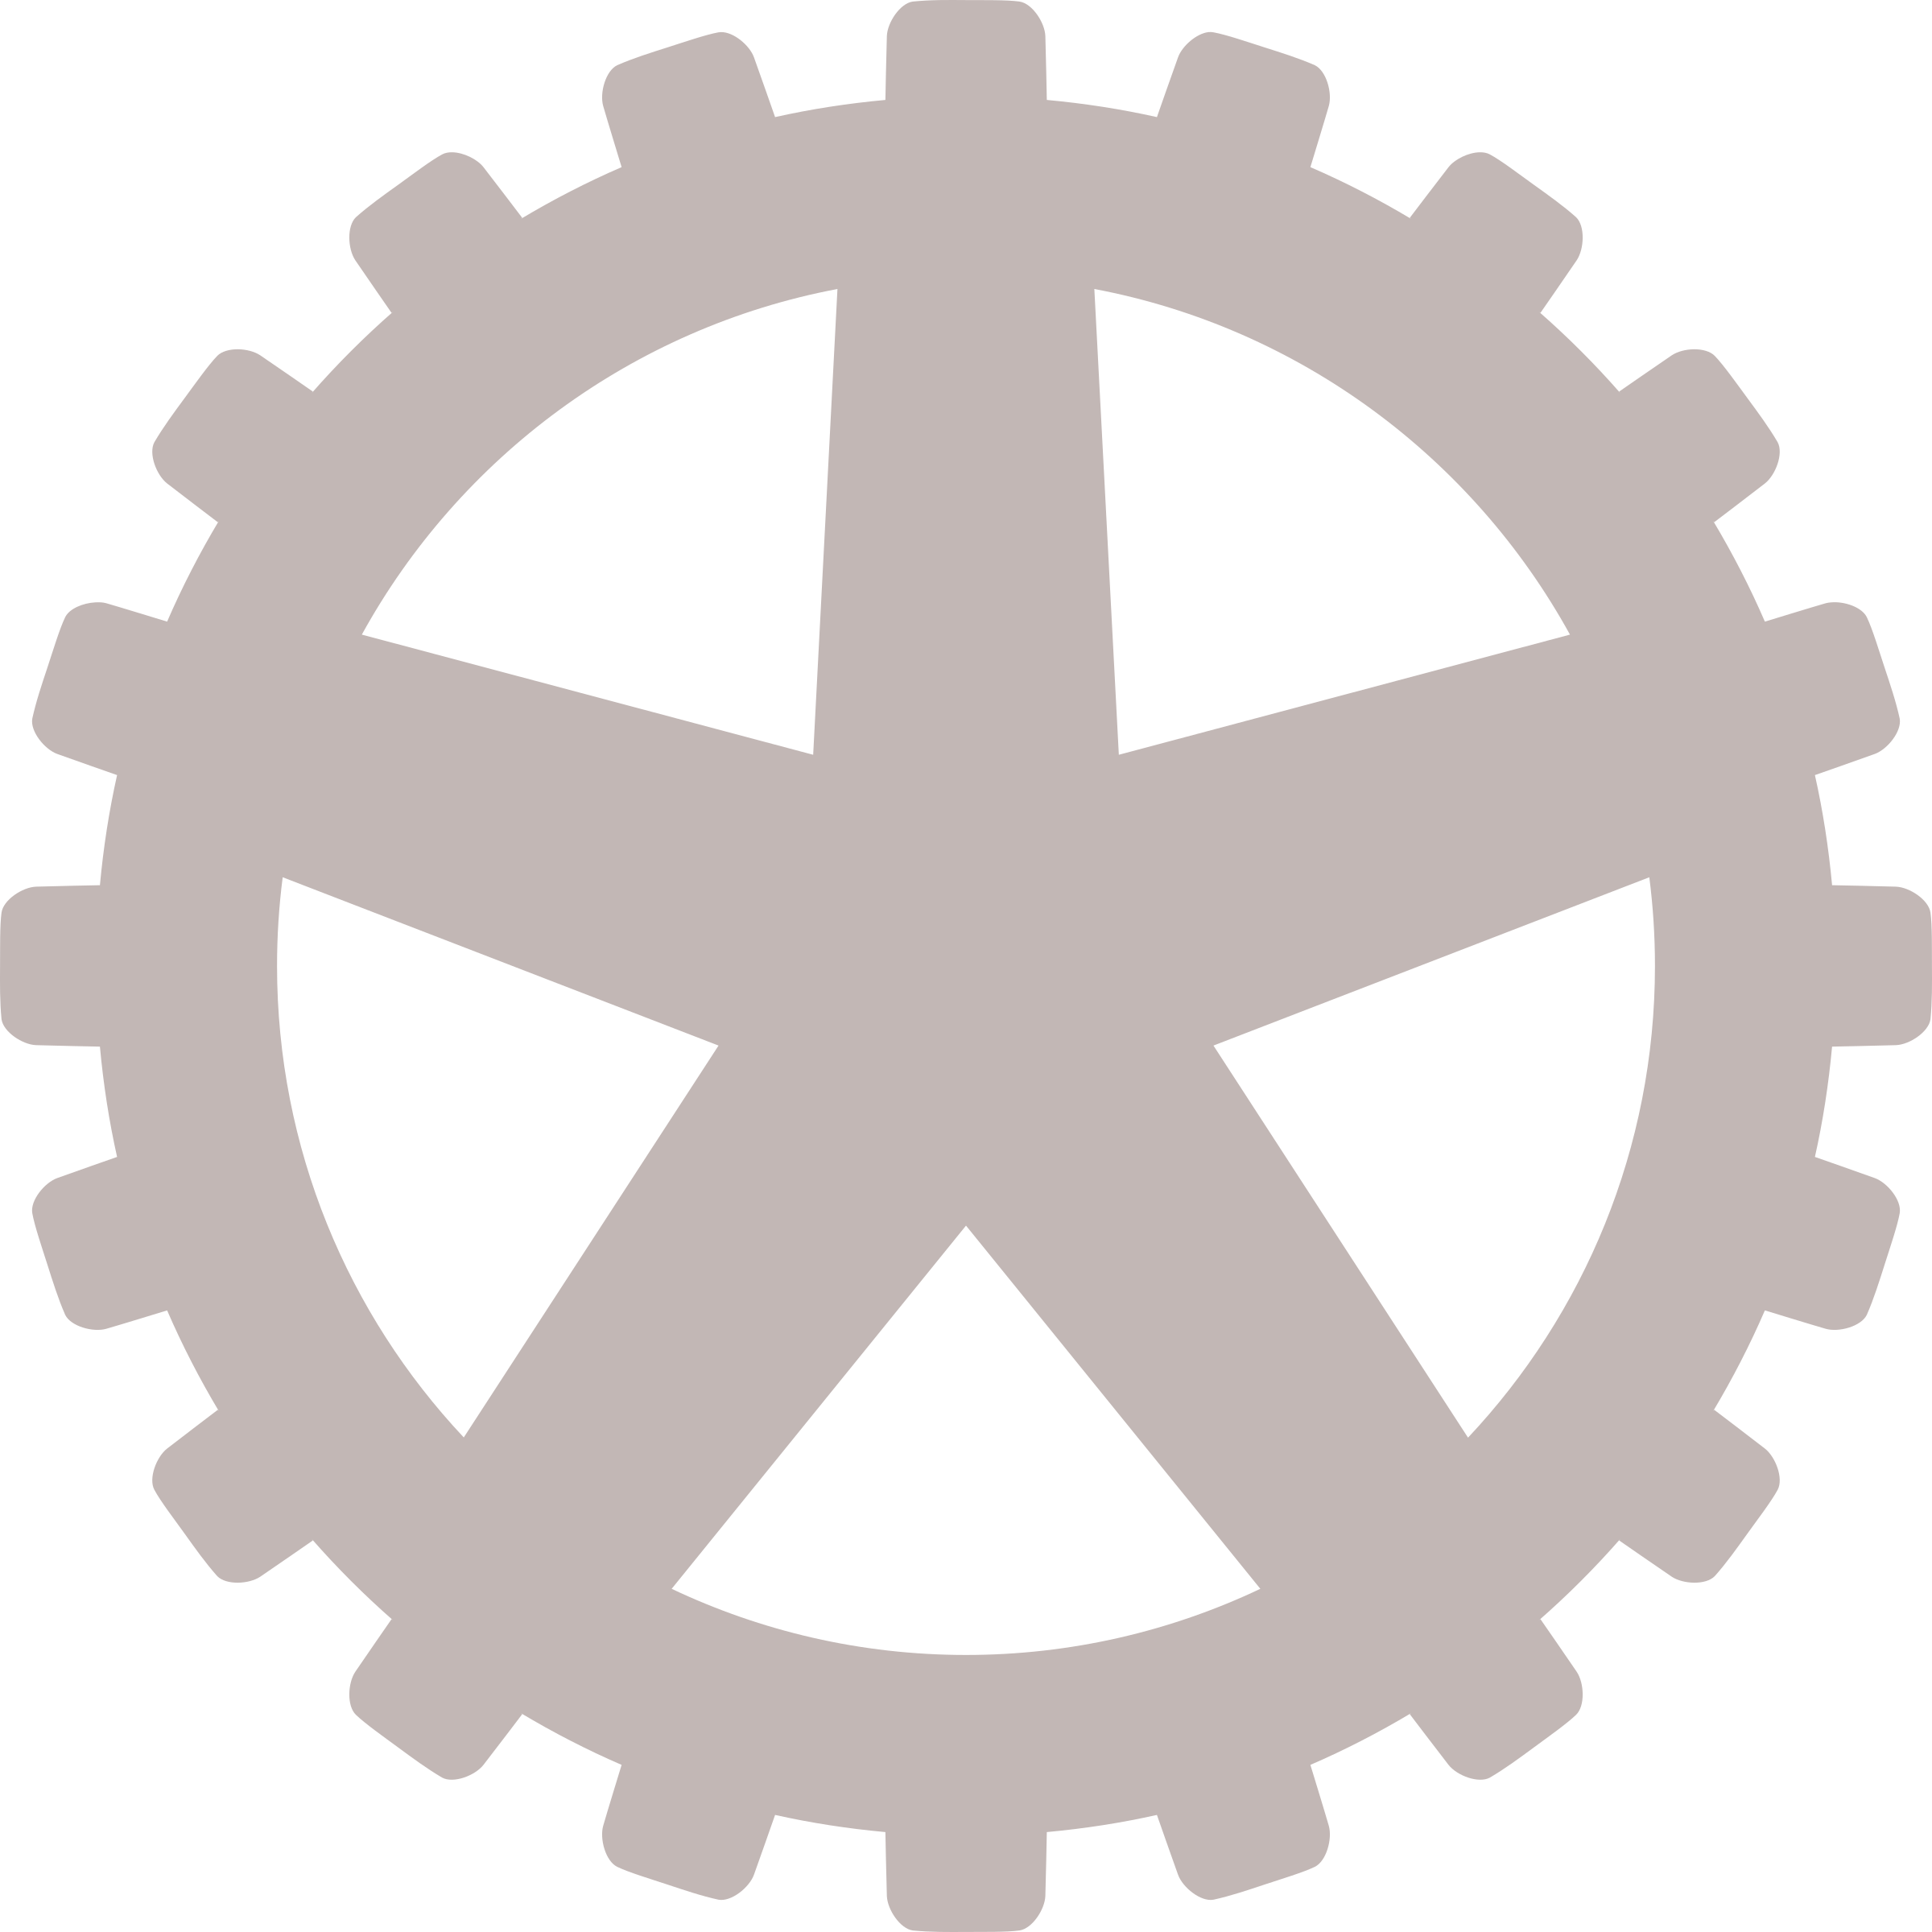 Gear wheel by Firkin